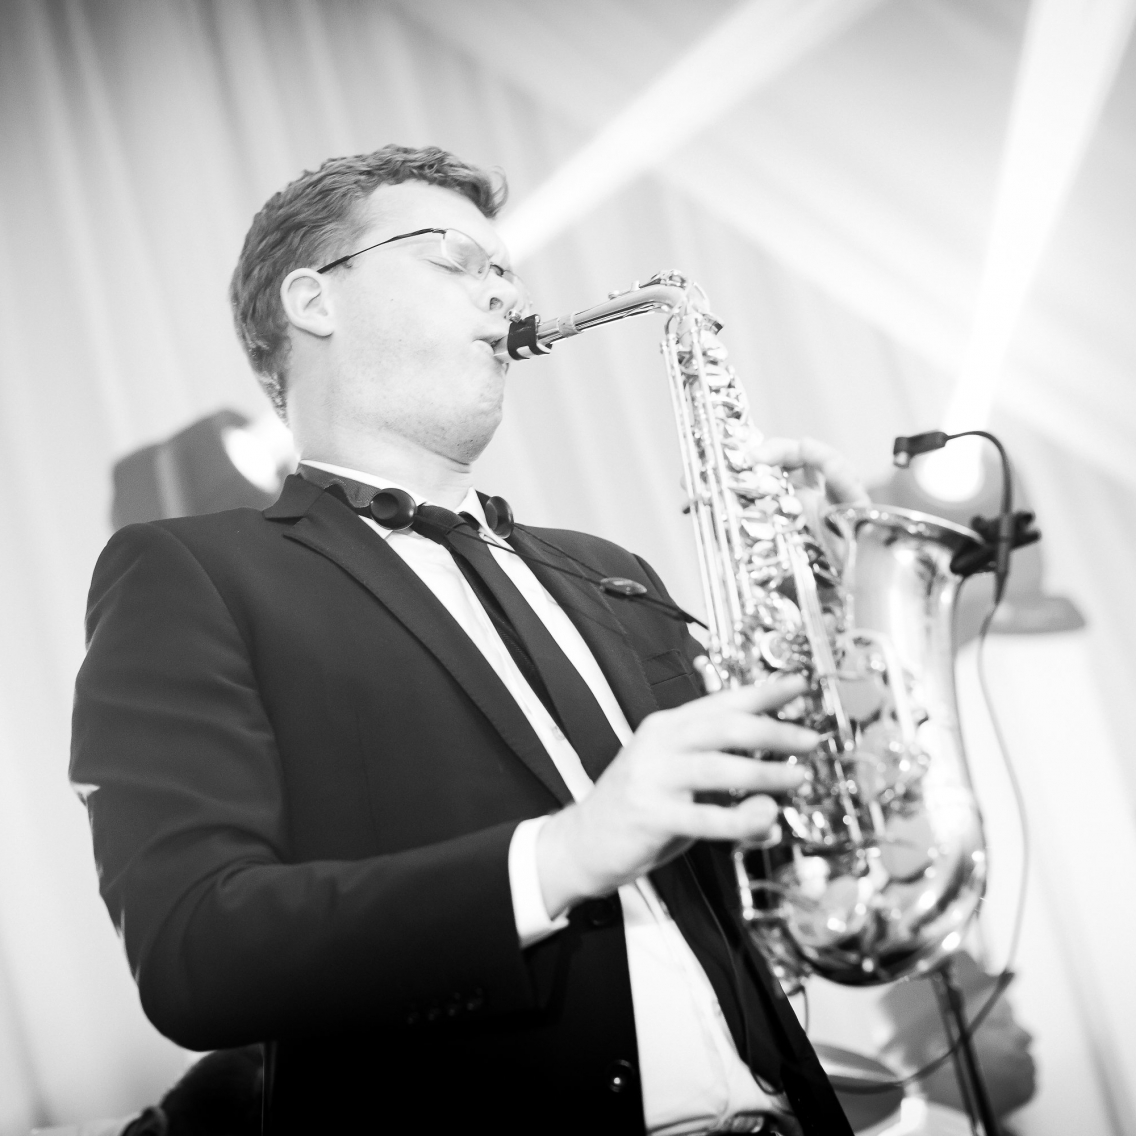 Saxophonist soloing